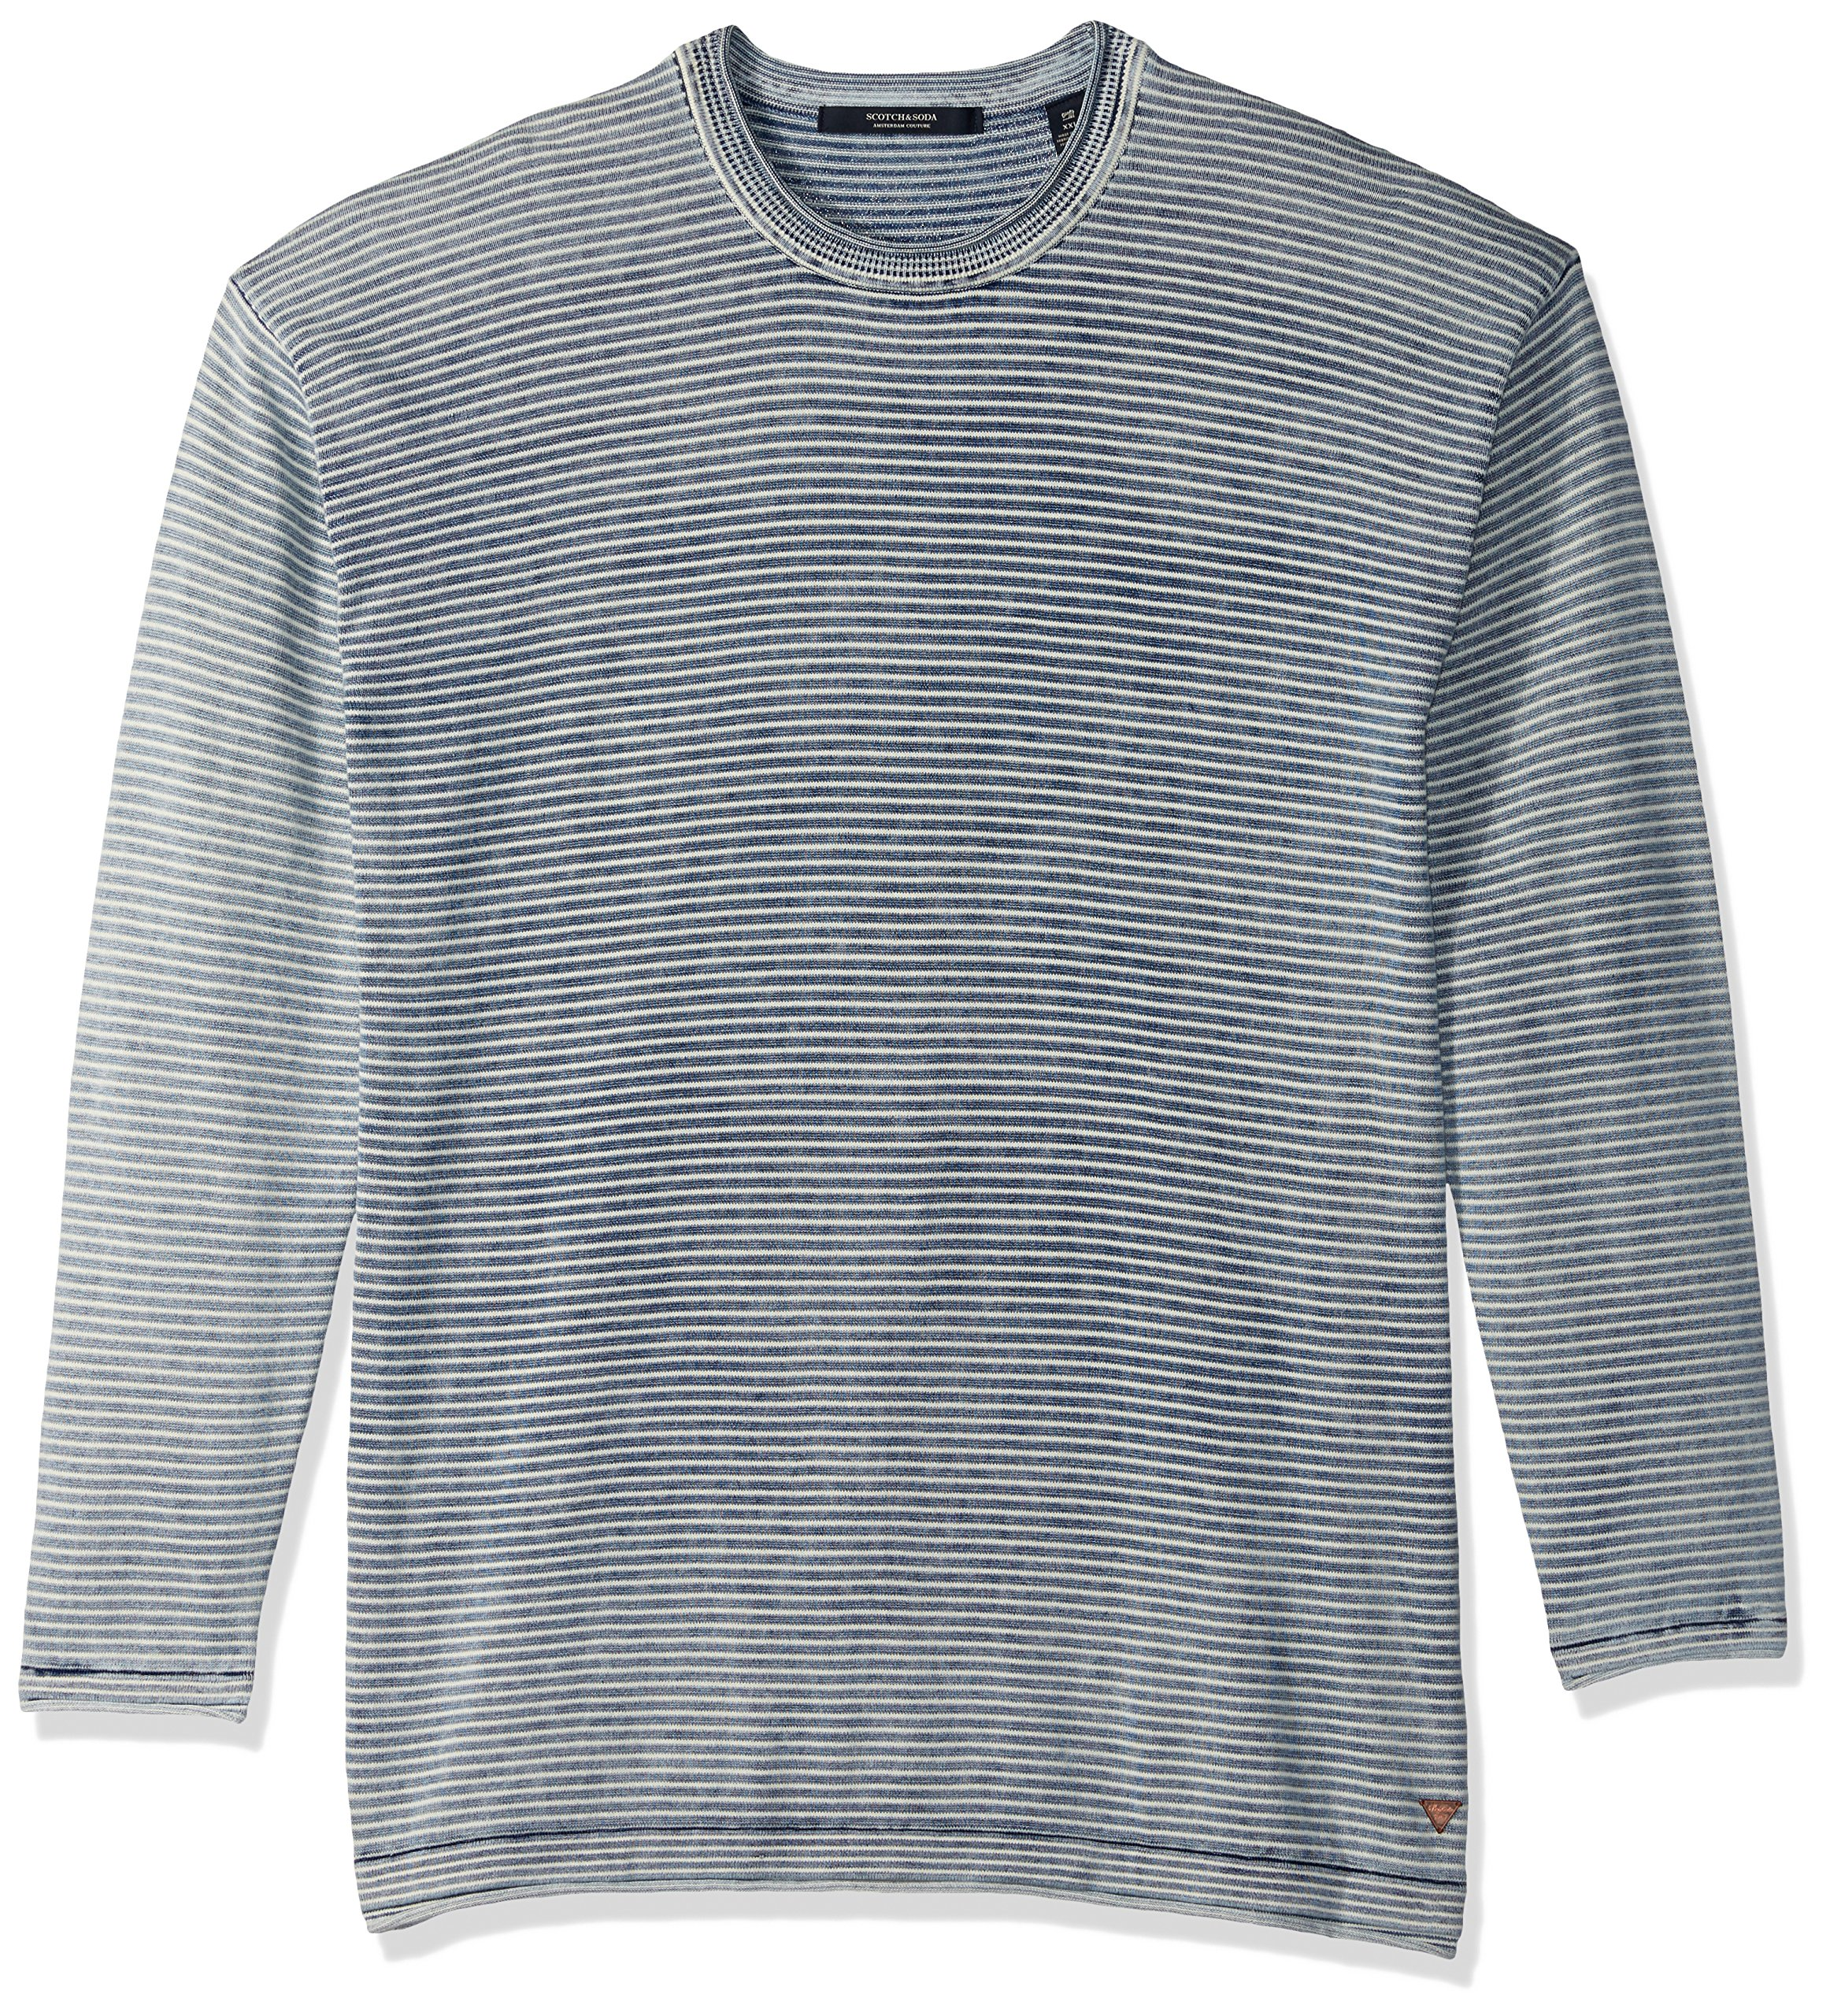 Scotch & Soda Men's Crewneck Pullover in Real Indigo Quality with Raw Edge Finis, Combo a, Large